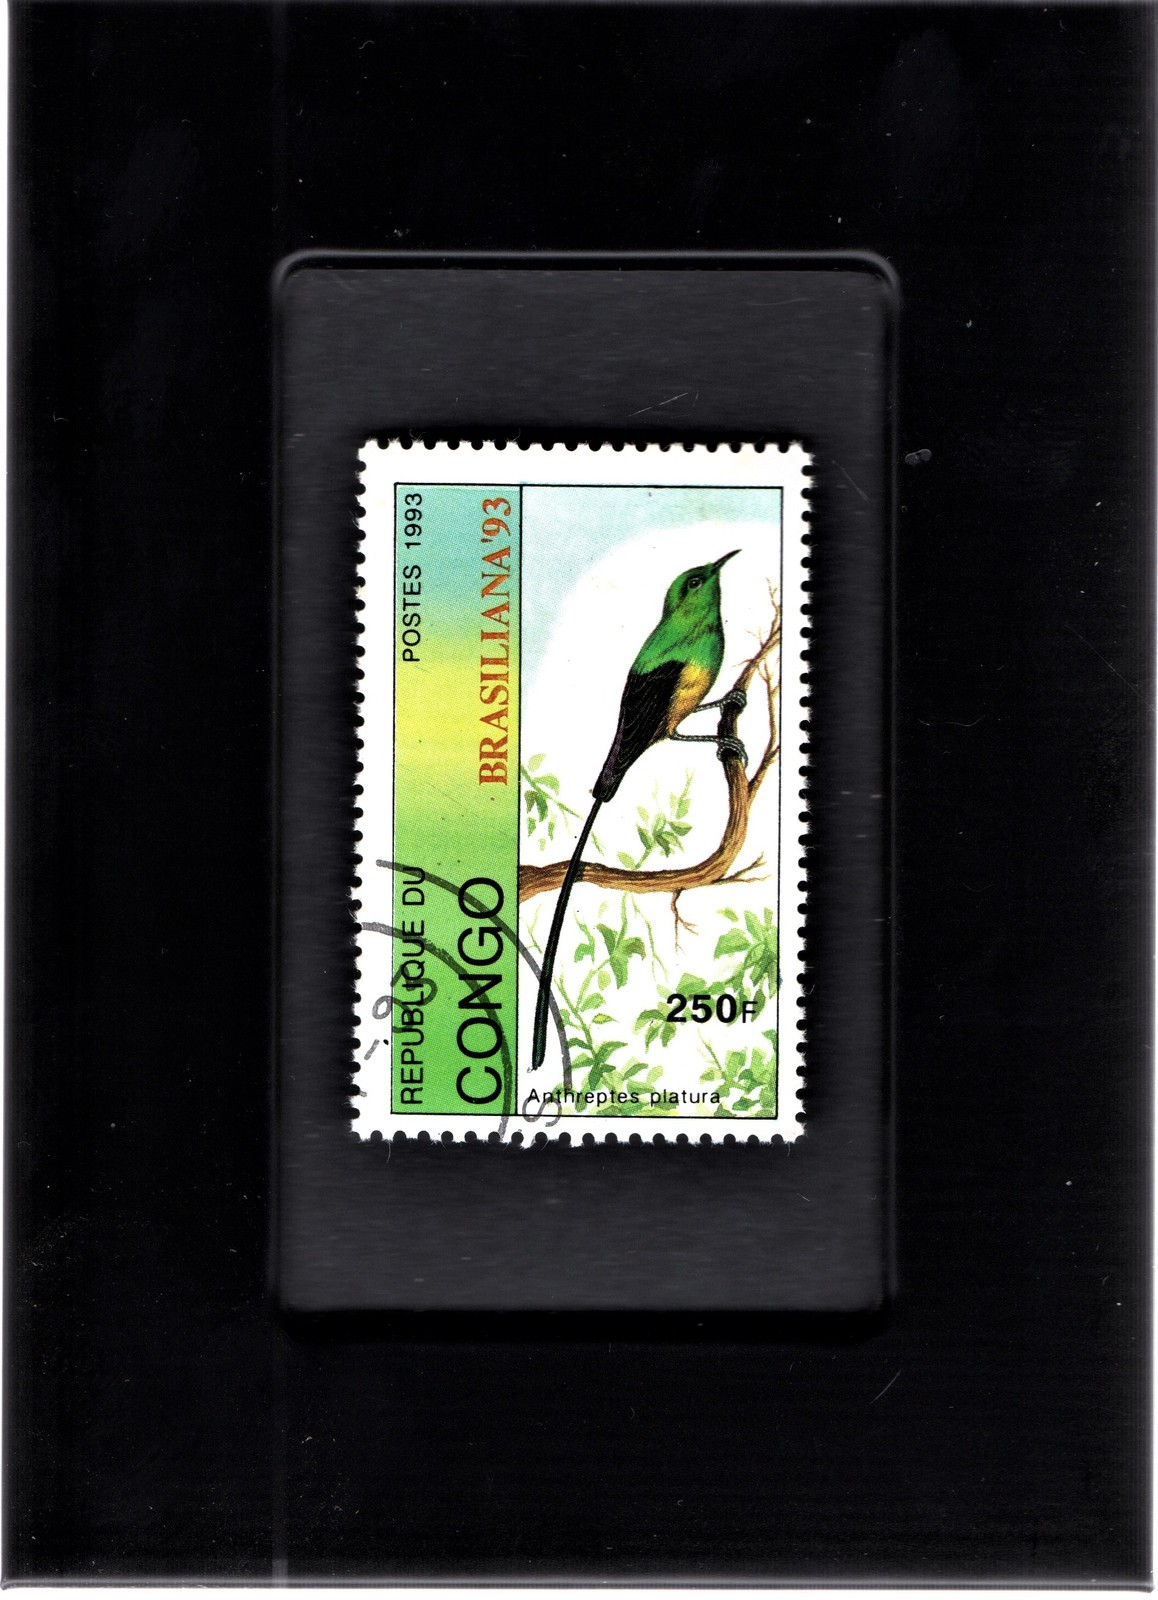 Primary image for Tchotchke Framed Stamp Art Collectable Postage Stamp- Pgymy Sunbird